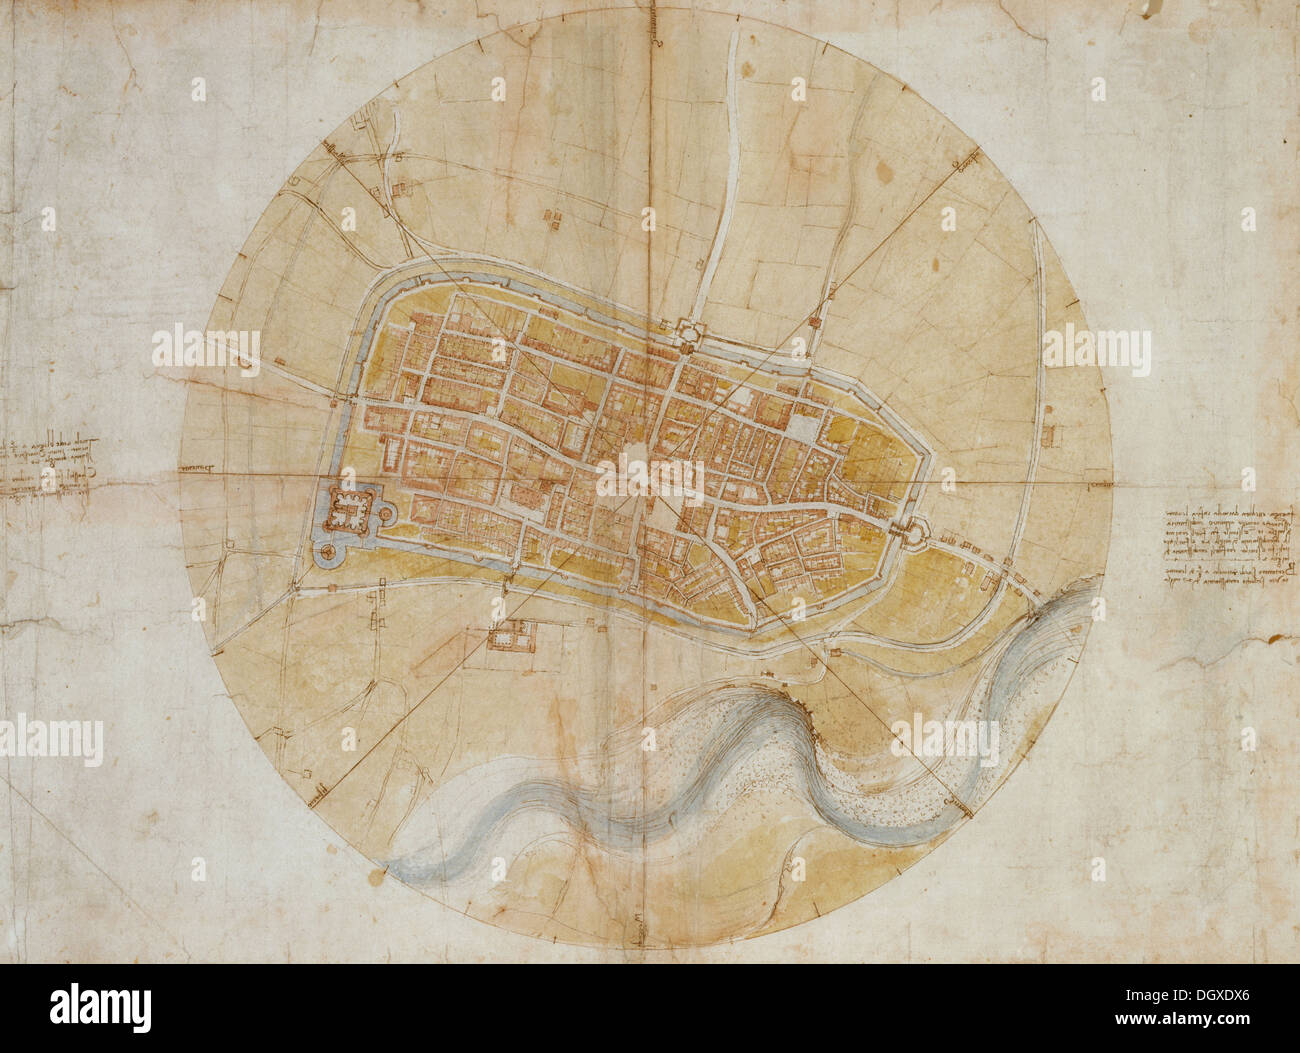 Map of Imola - by Leonardo da Vinci, 1502 - Stock Image